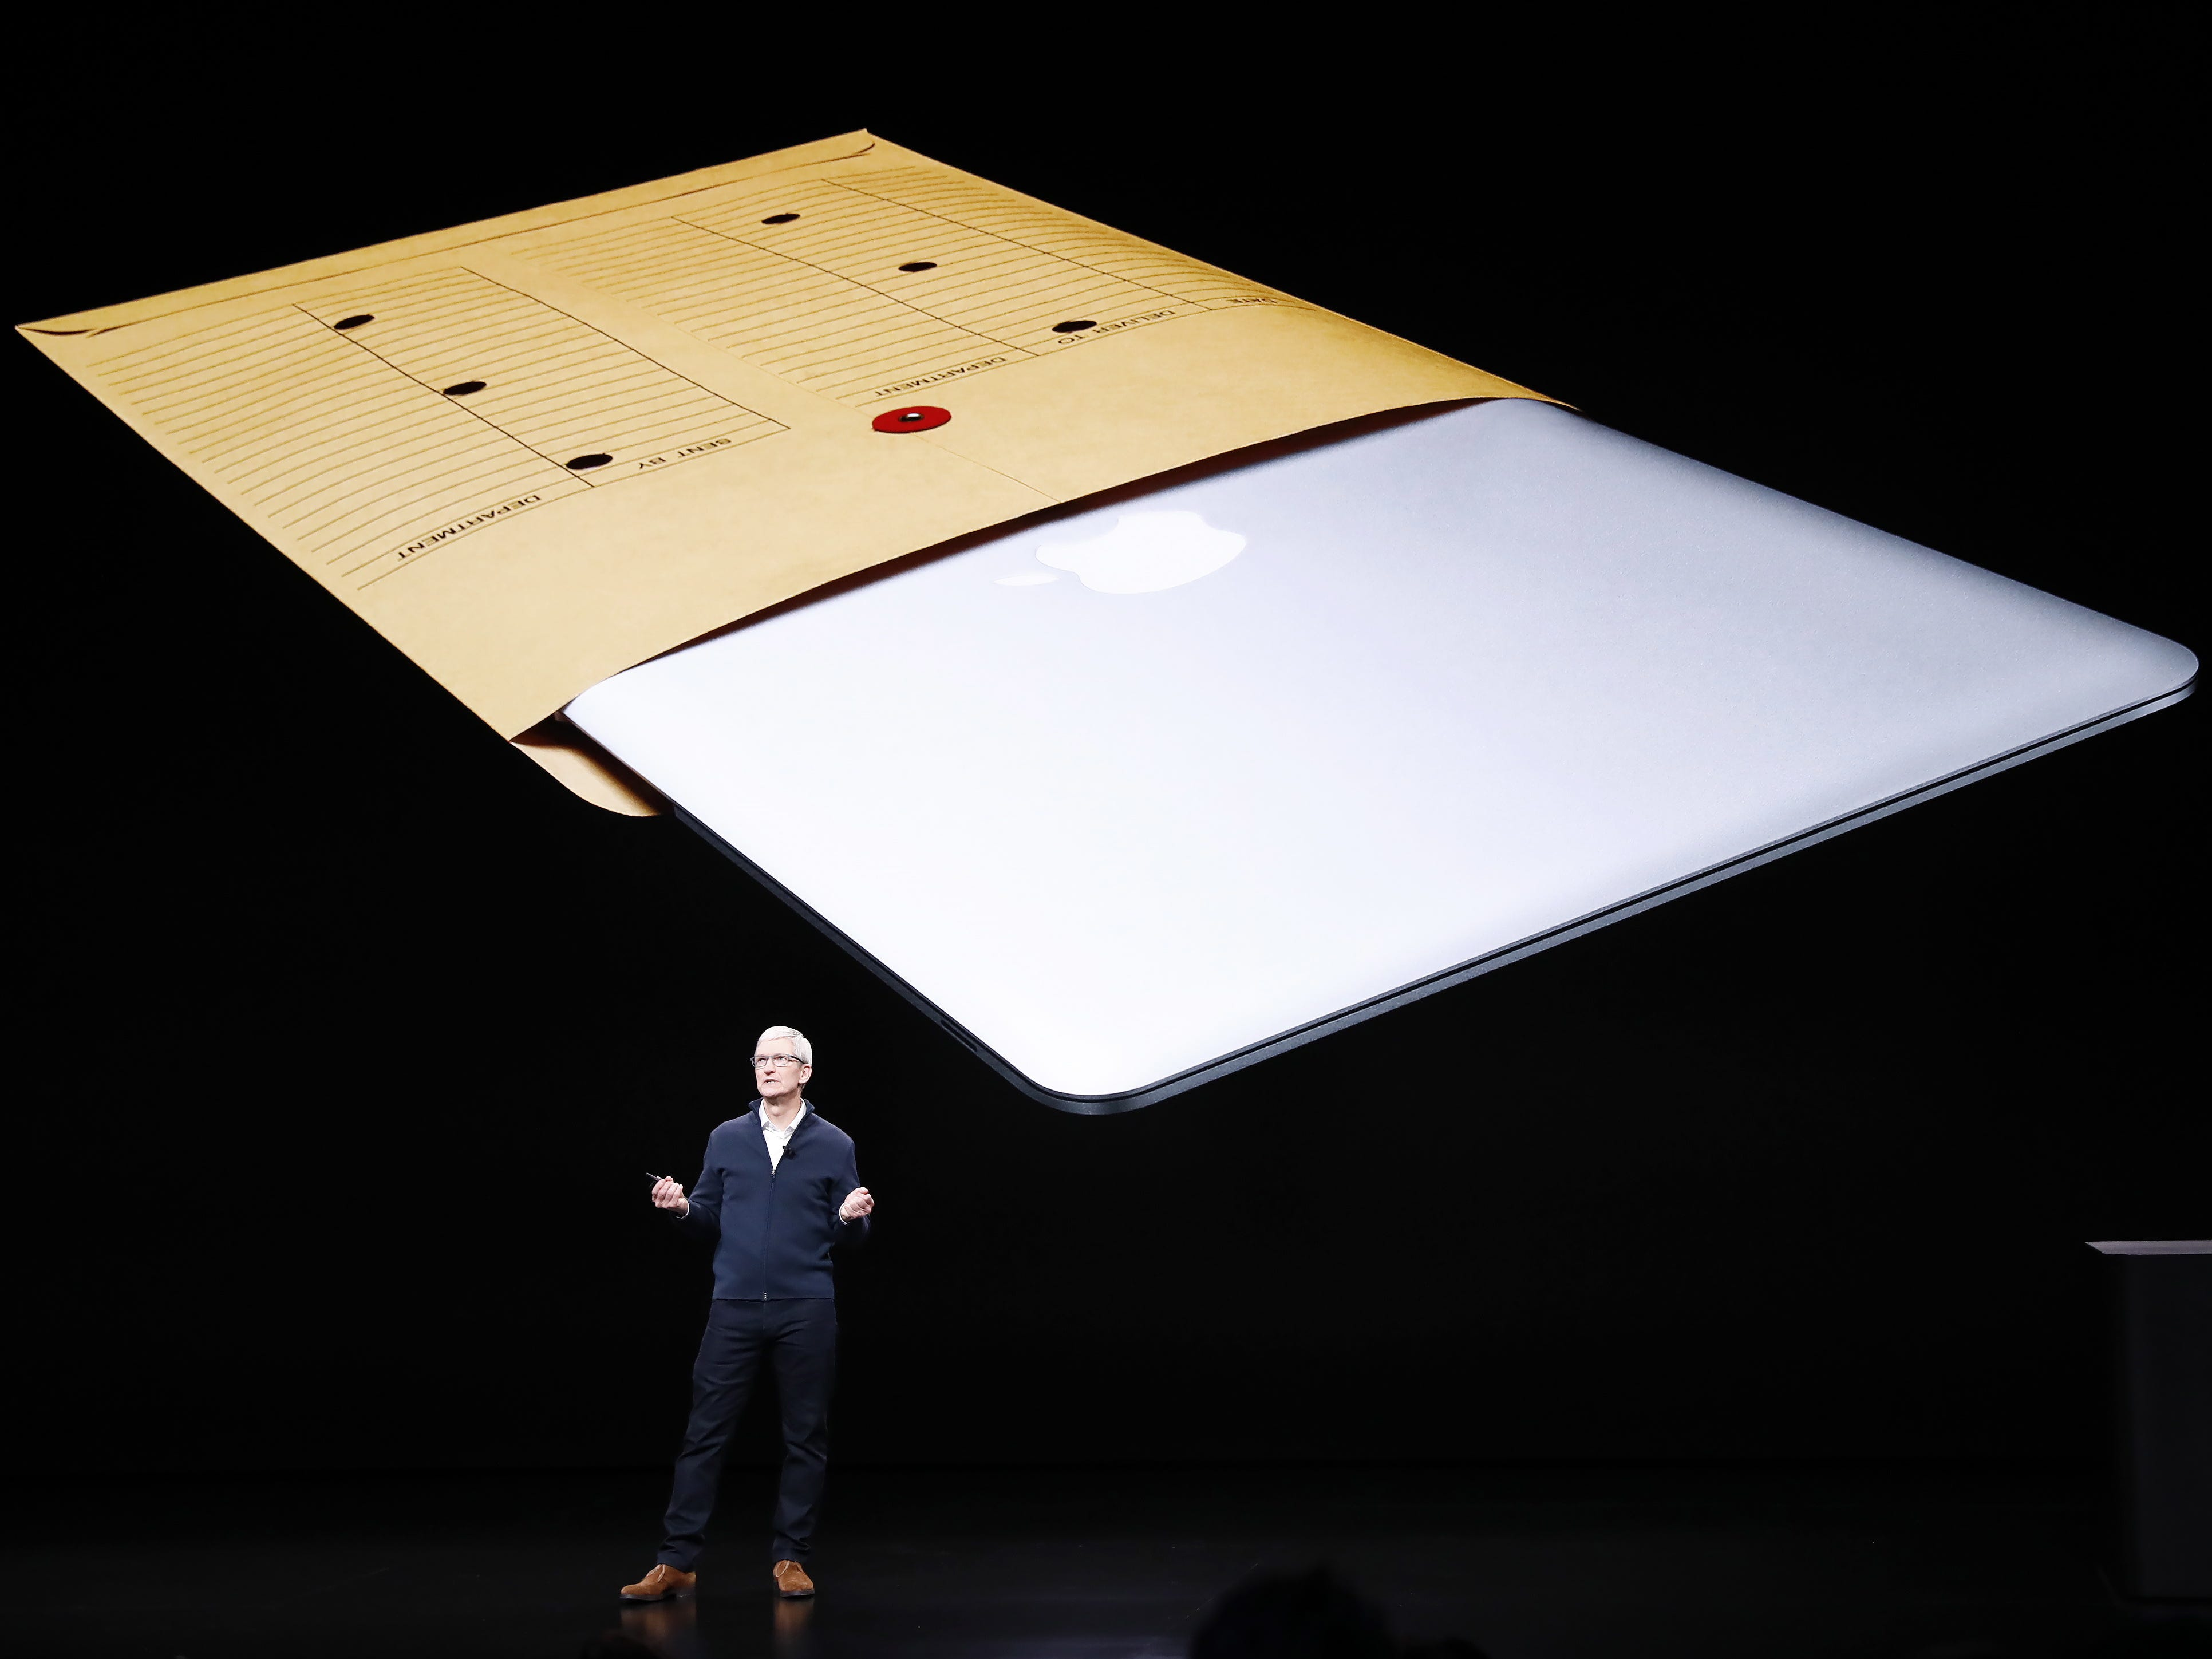 Apple CEO Tim Cook speaks with a Macbook Air on a screen behind him during an Apple special event at the Howard Gilman Opera House at the Brooklyn Academy of Music before the start of an Apple event in New York, Tuesday, Oct. 30, 2018.